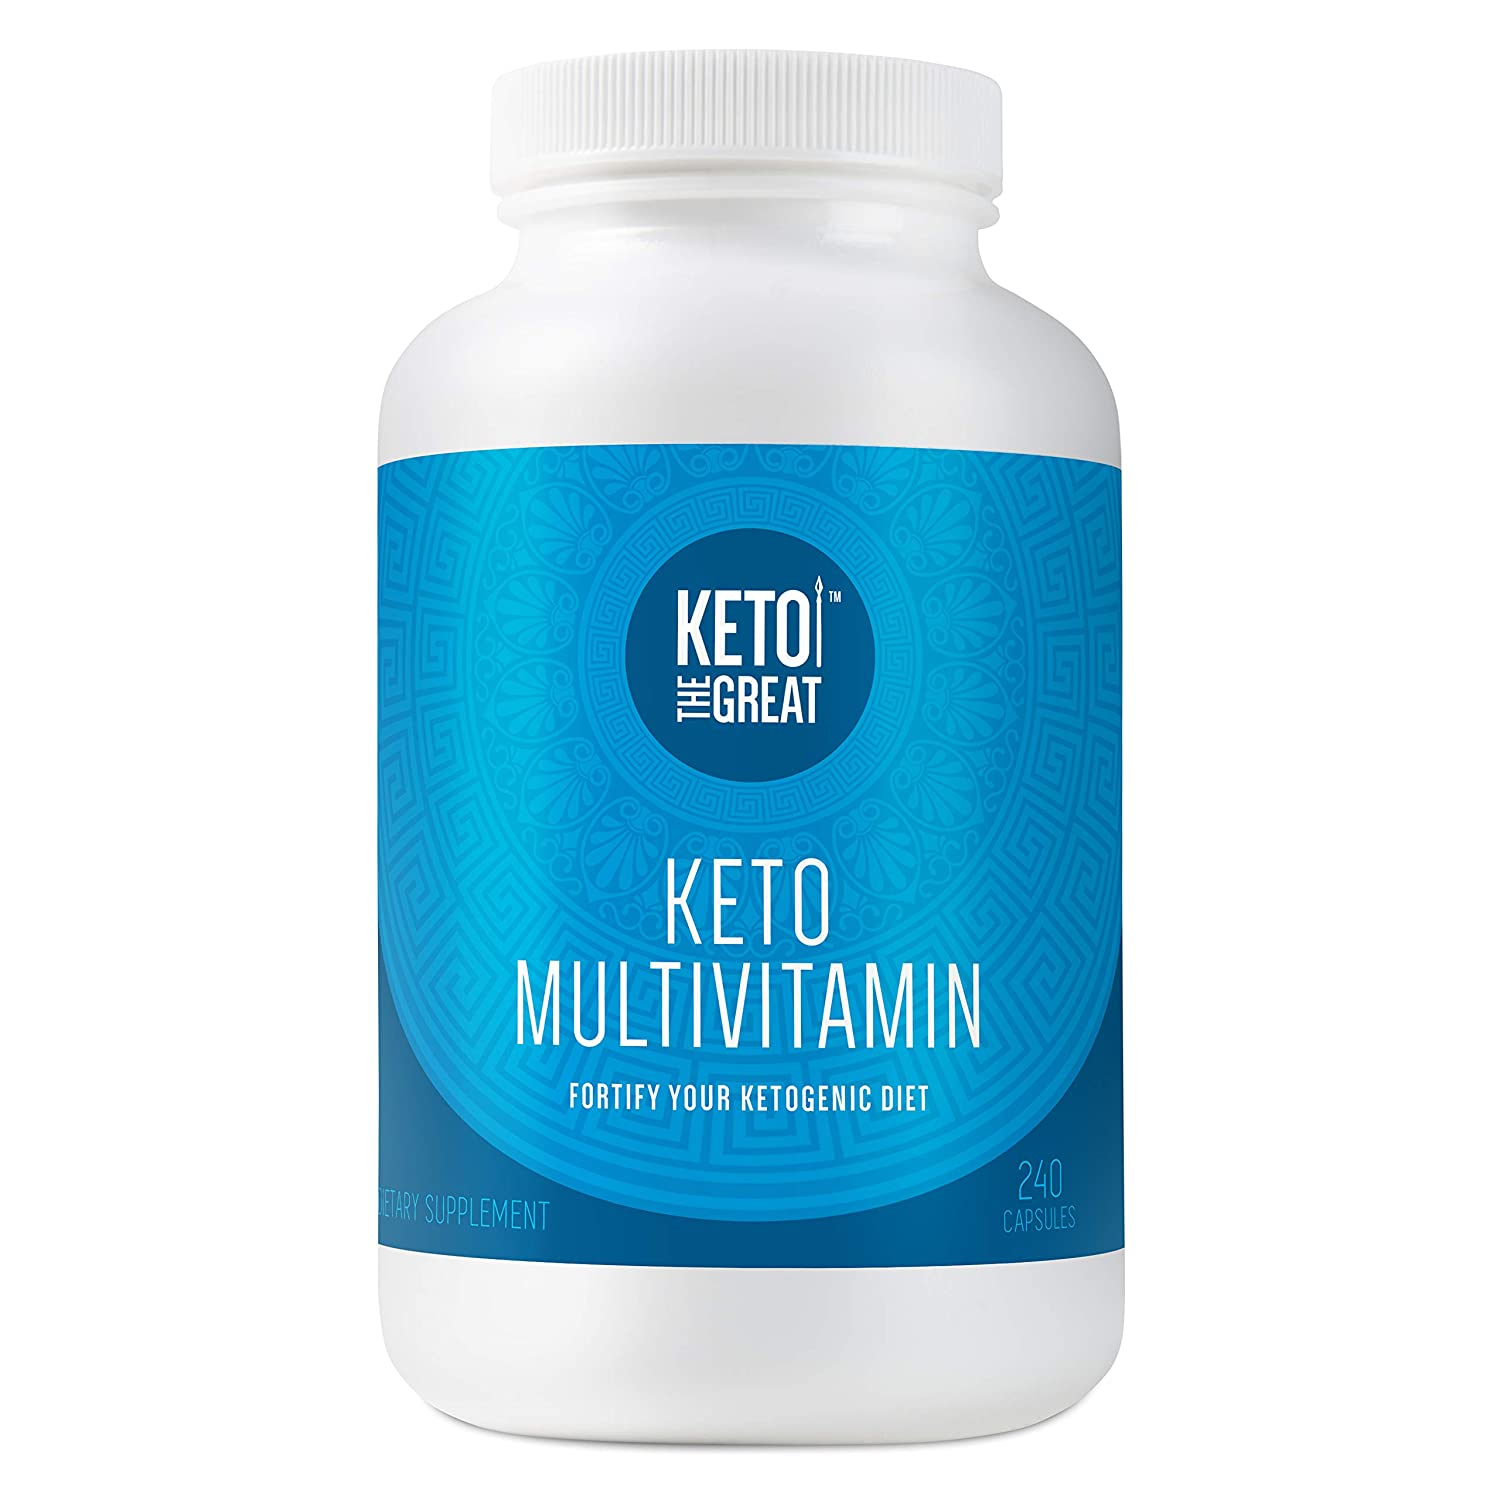 Keto the Great – Keto Multivitamin for Men and Women – Daily Vitamin and Mineral Supplement Pills for Ketogenic Diet – with Key Vitamins, Electrolytes, MCT and BHB to Help Ketosis, 240 Capsules